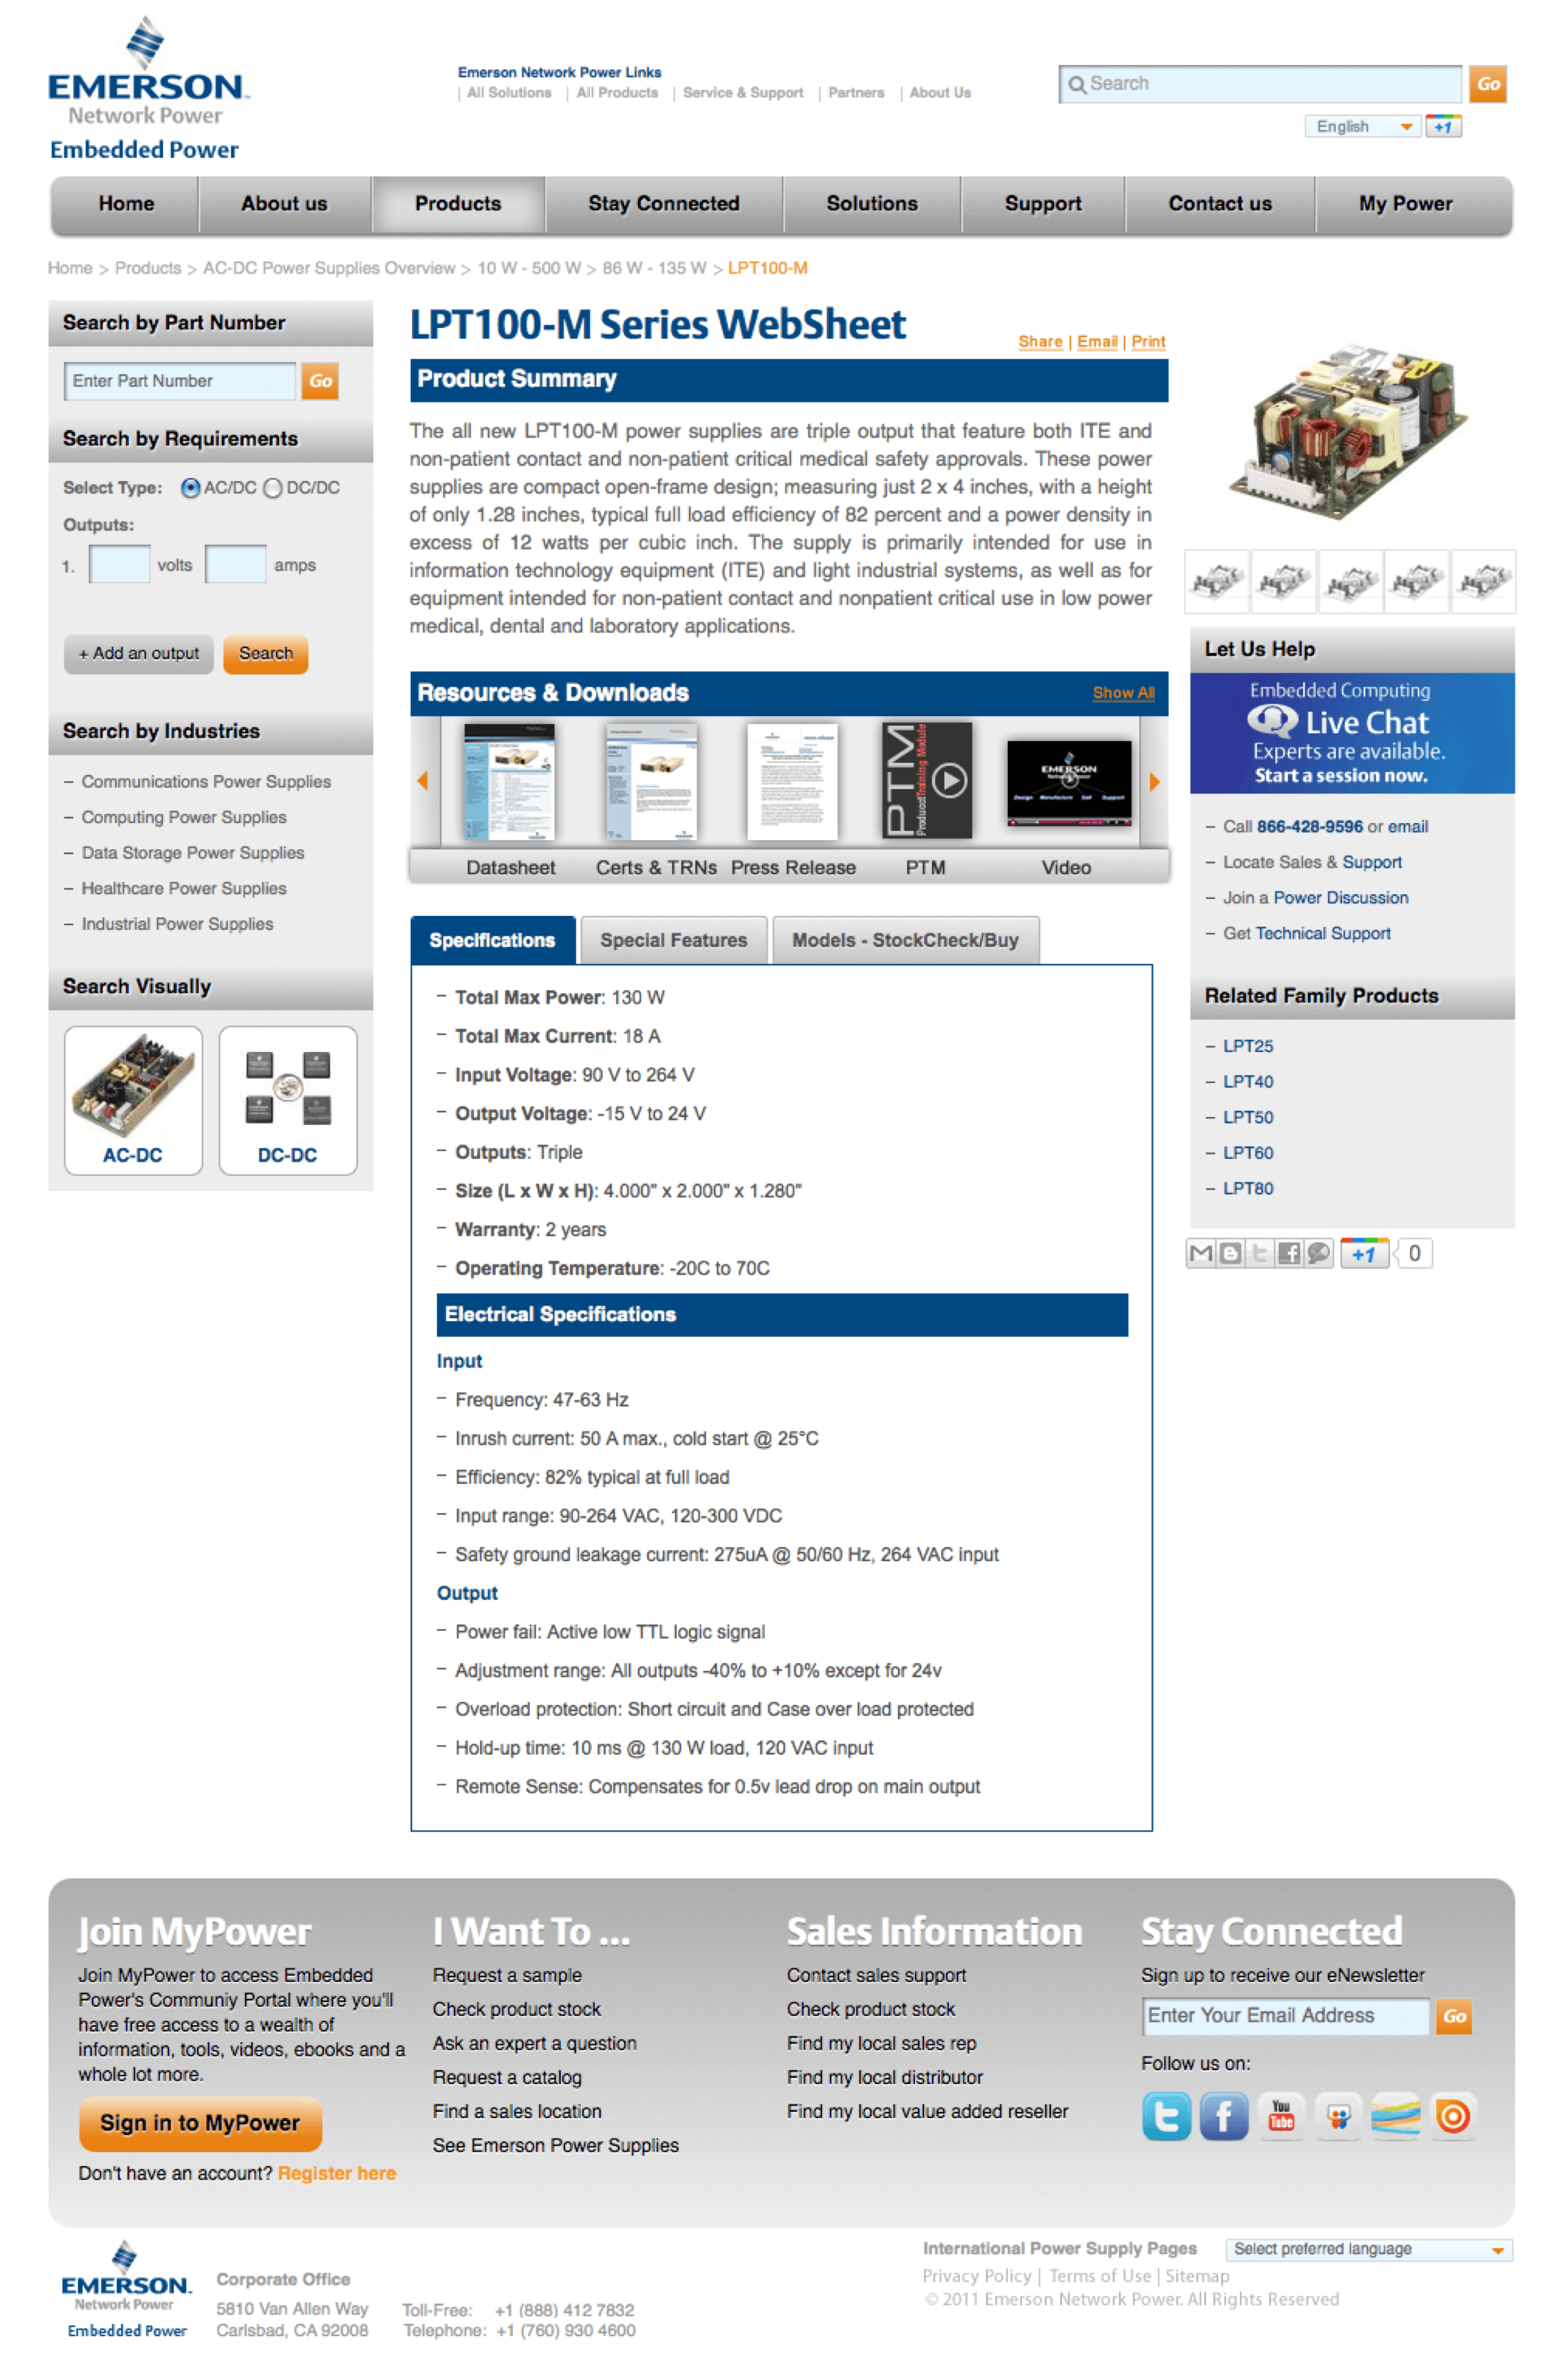 emerson-embedded-ac-dc-power-supplies-website-design-product-LPT100-M